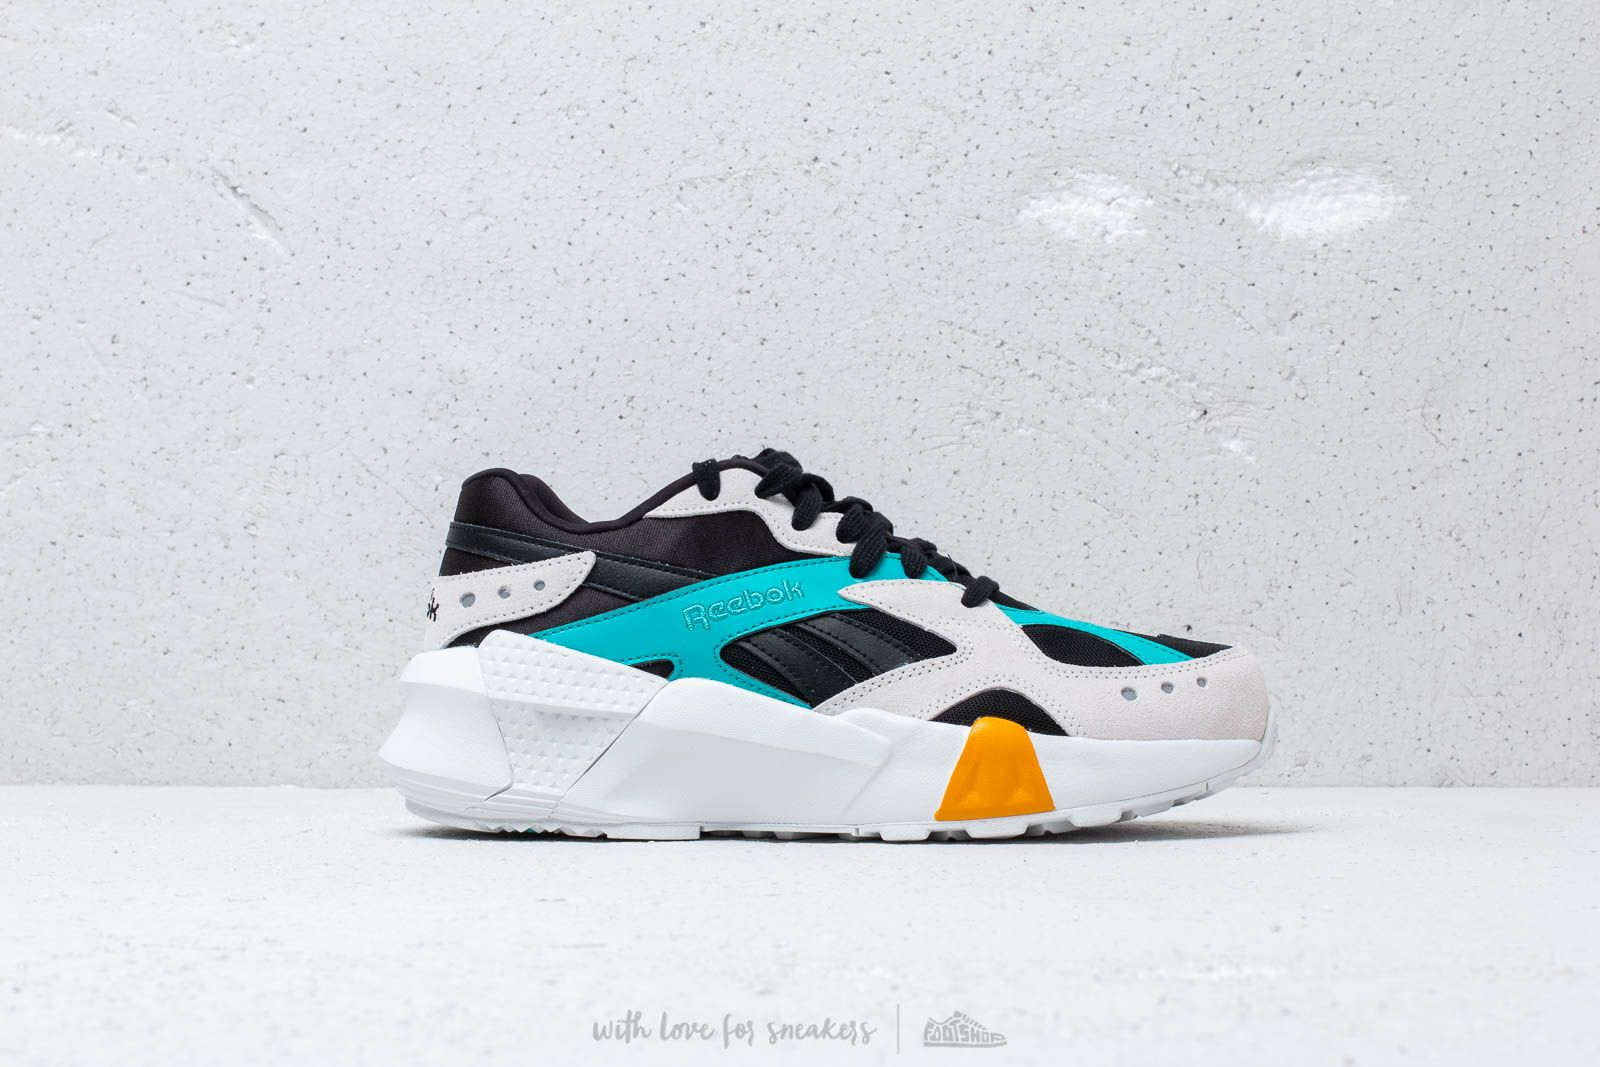 402a9daa4cc Reebok x Gigi Hadid Aztrek Double 93 Black  Blue  Grey  Gold at a